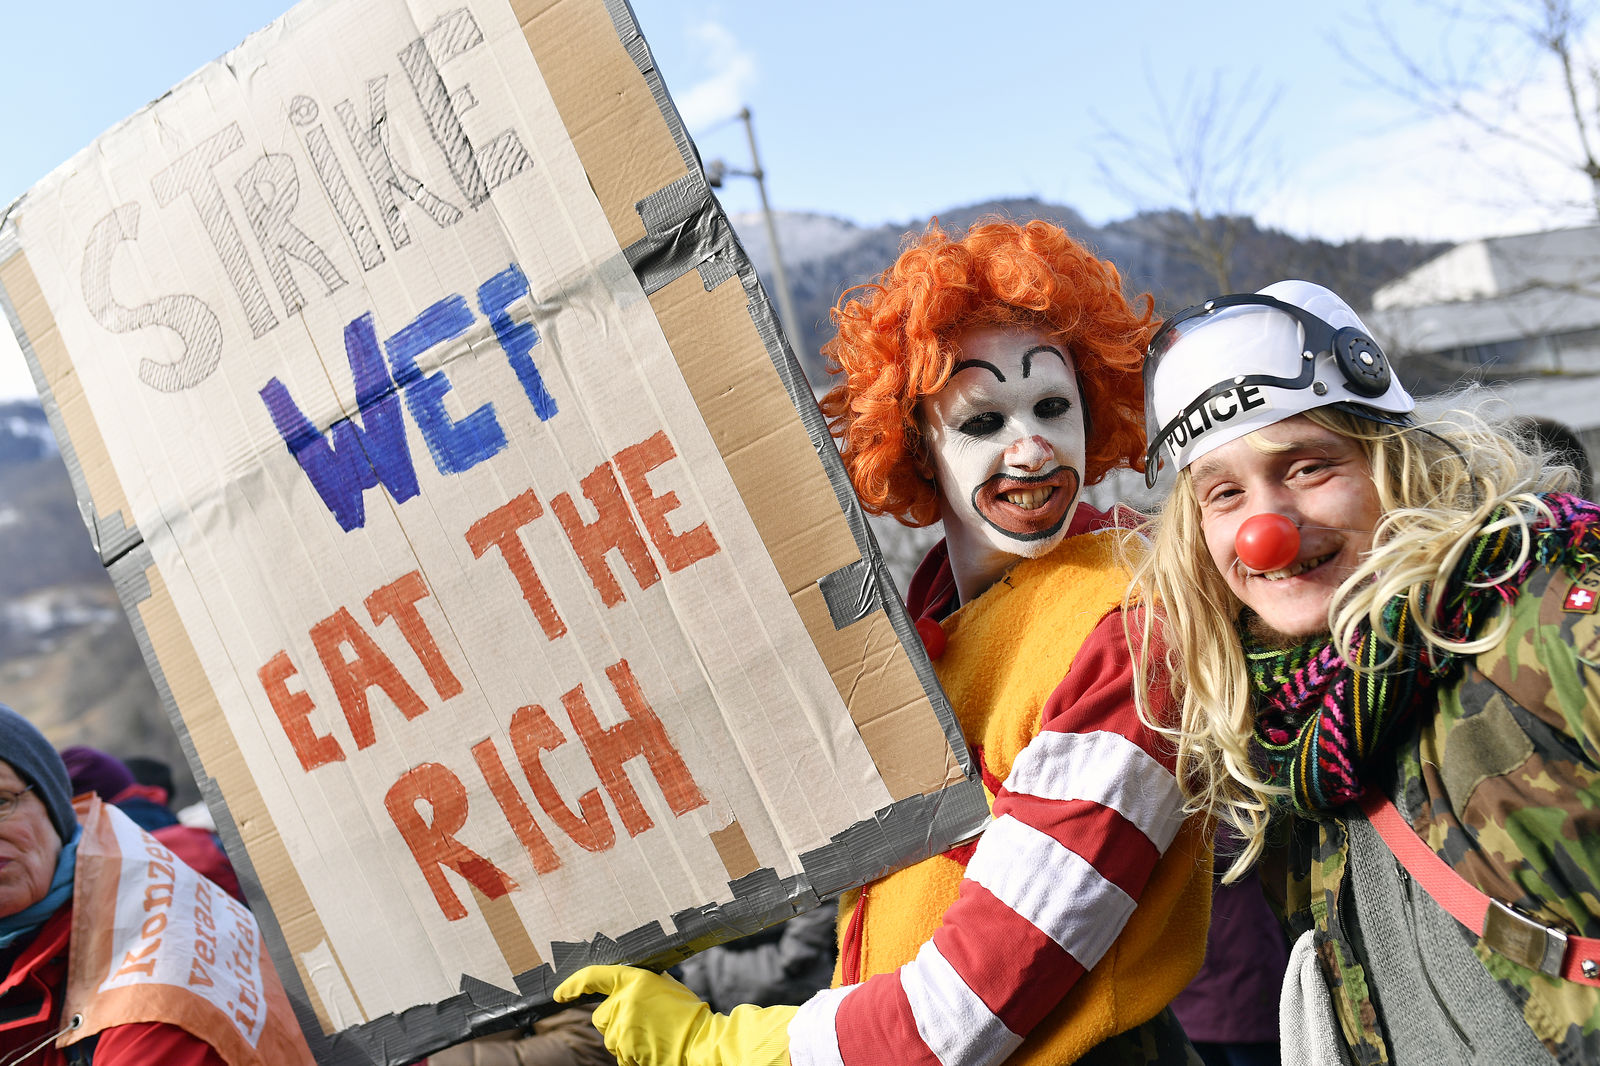 Participants of the climate protest march gather at the train station in Landquart, Switzerland, Sunday, Jan. 19, 2020. (Walter Bieri/Keystone via AP)